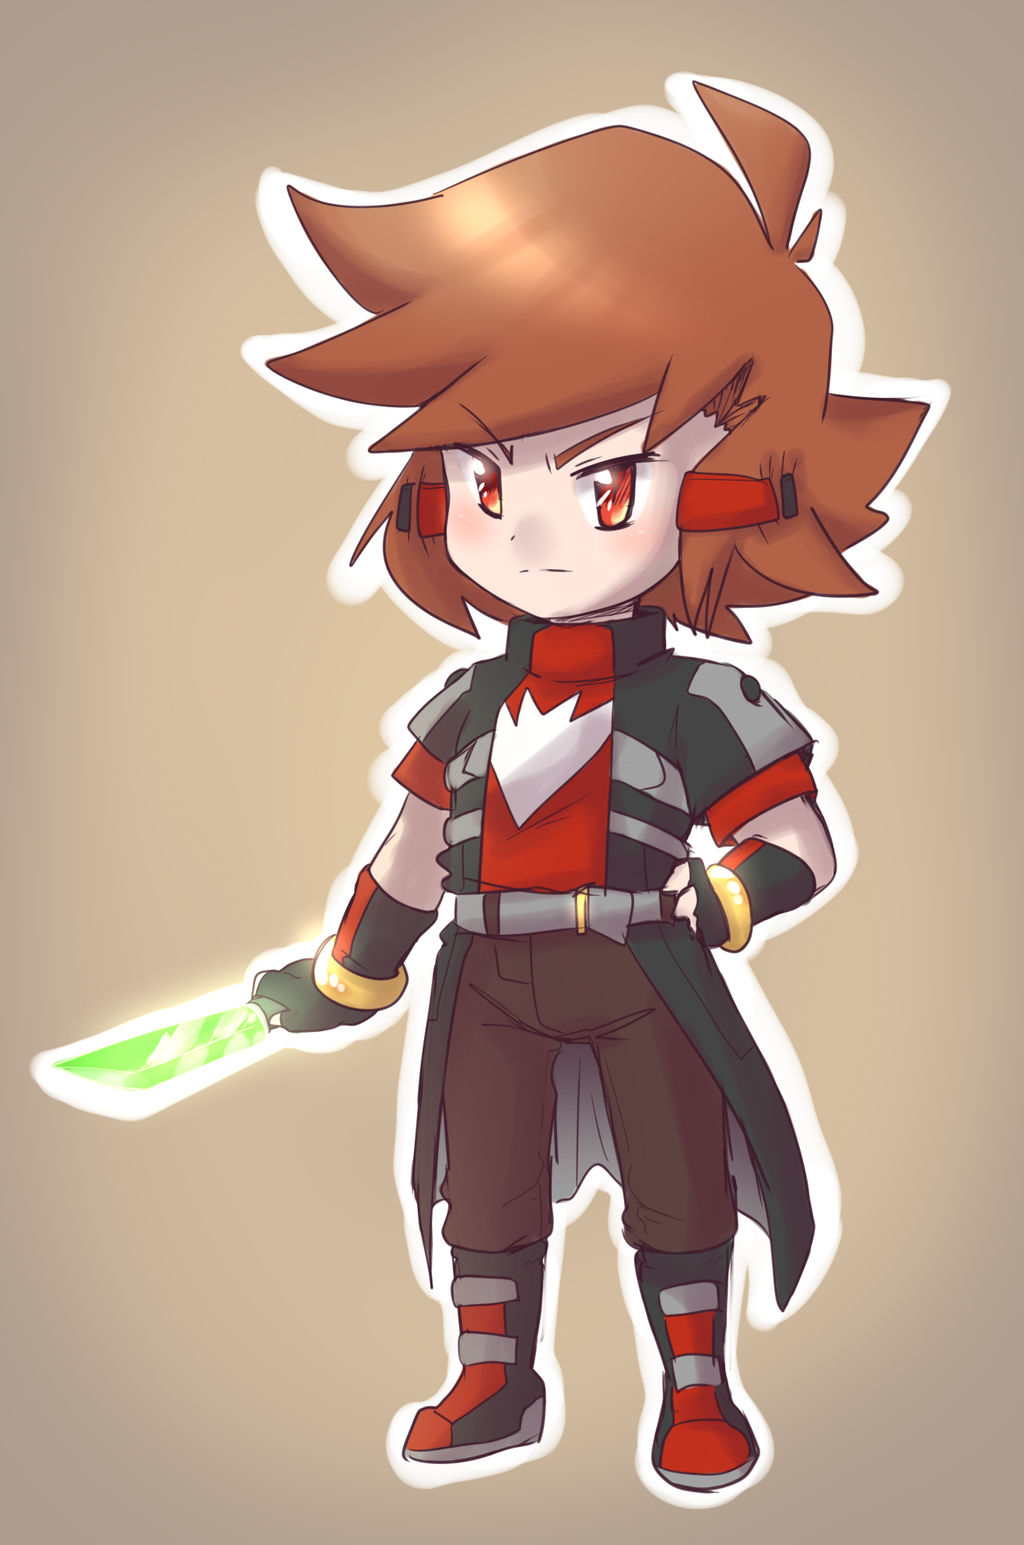 Underboom chara by thegreatrouge-d9vnvnp